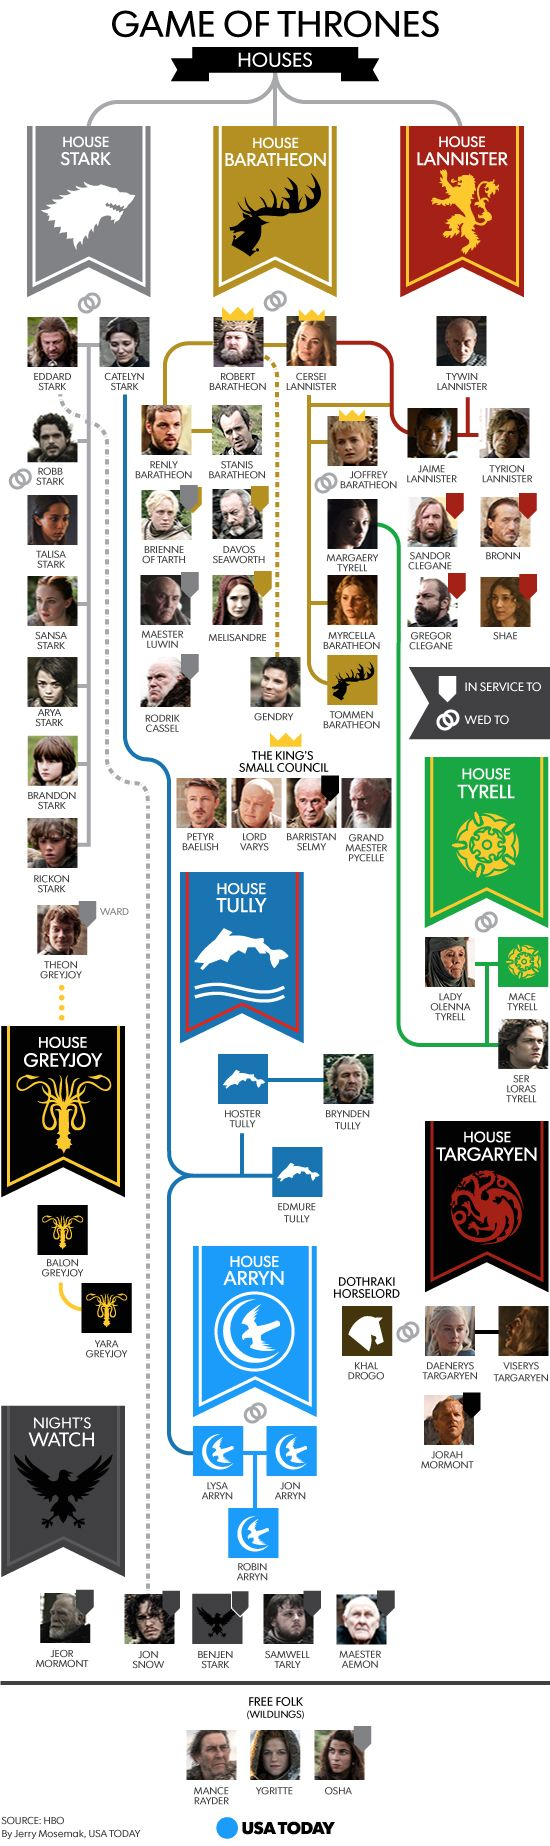 game of thrones family game